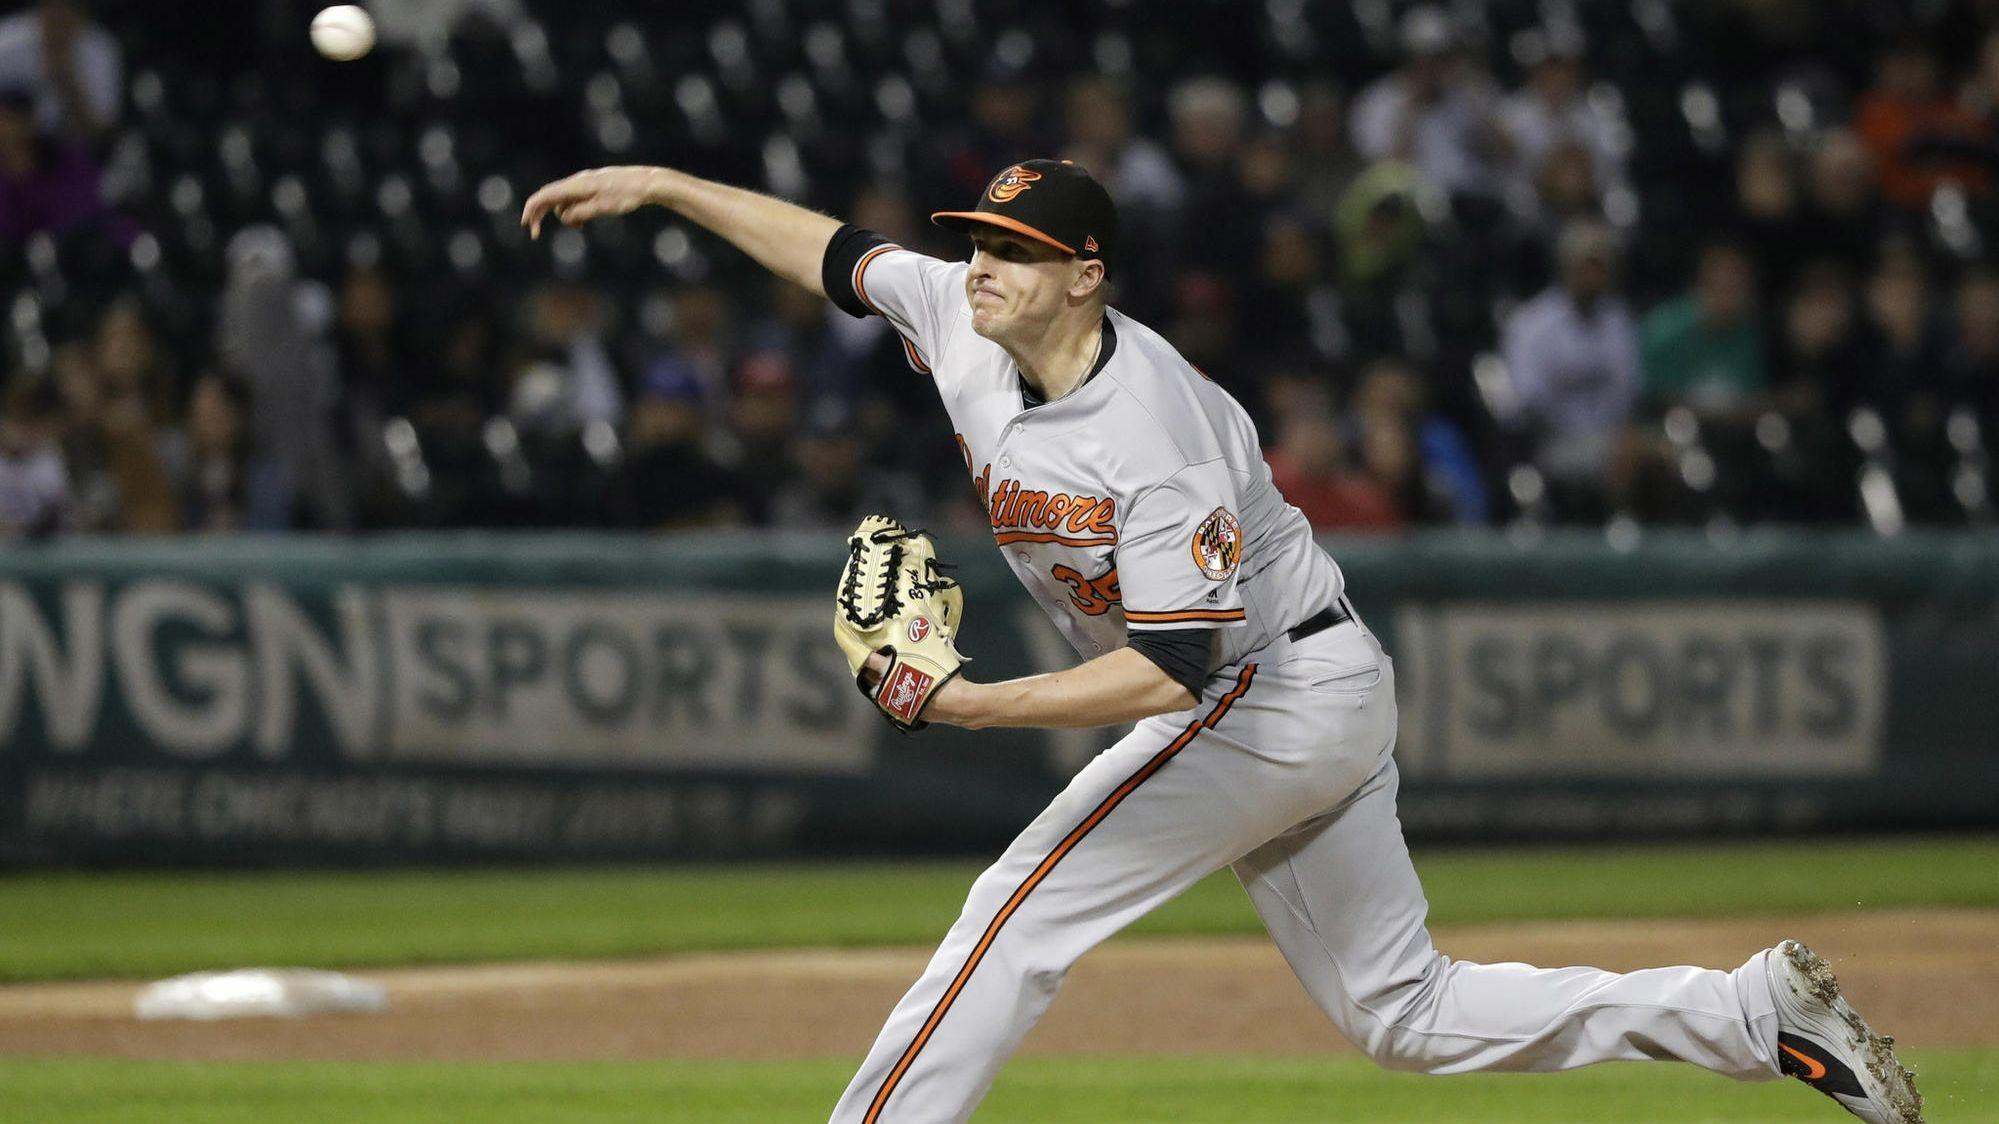 Bs-sp-orioles-notes-brach-britton-20180522